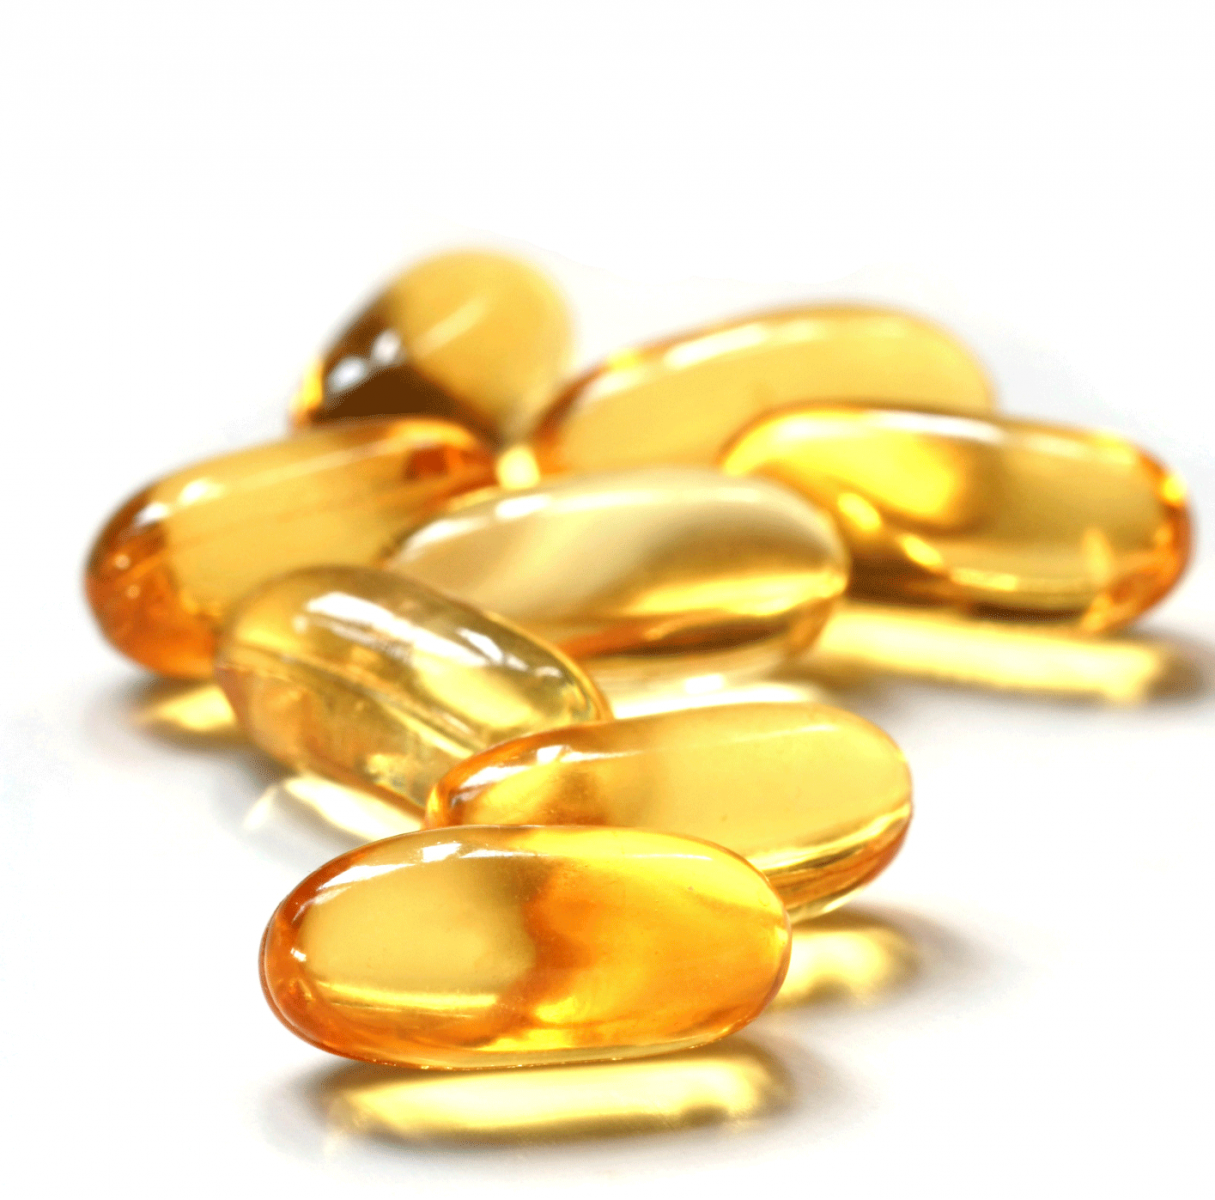 benefits of vitamin e supplements for skin